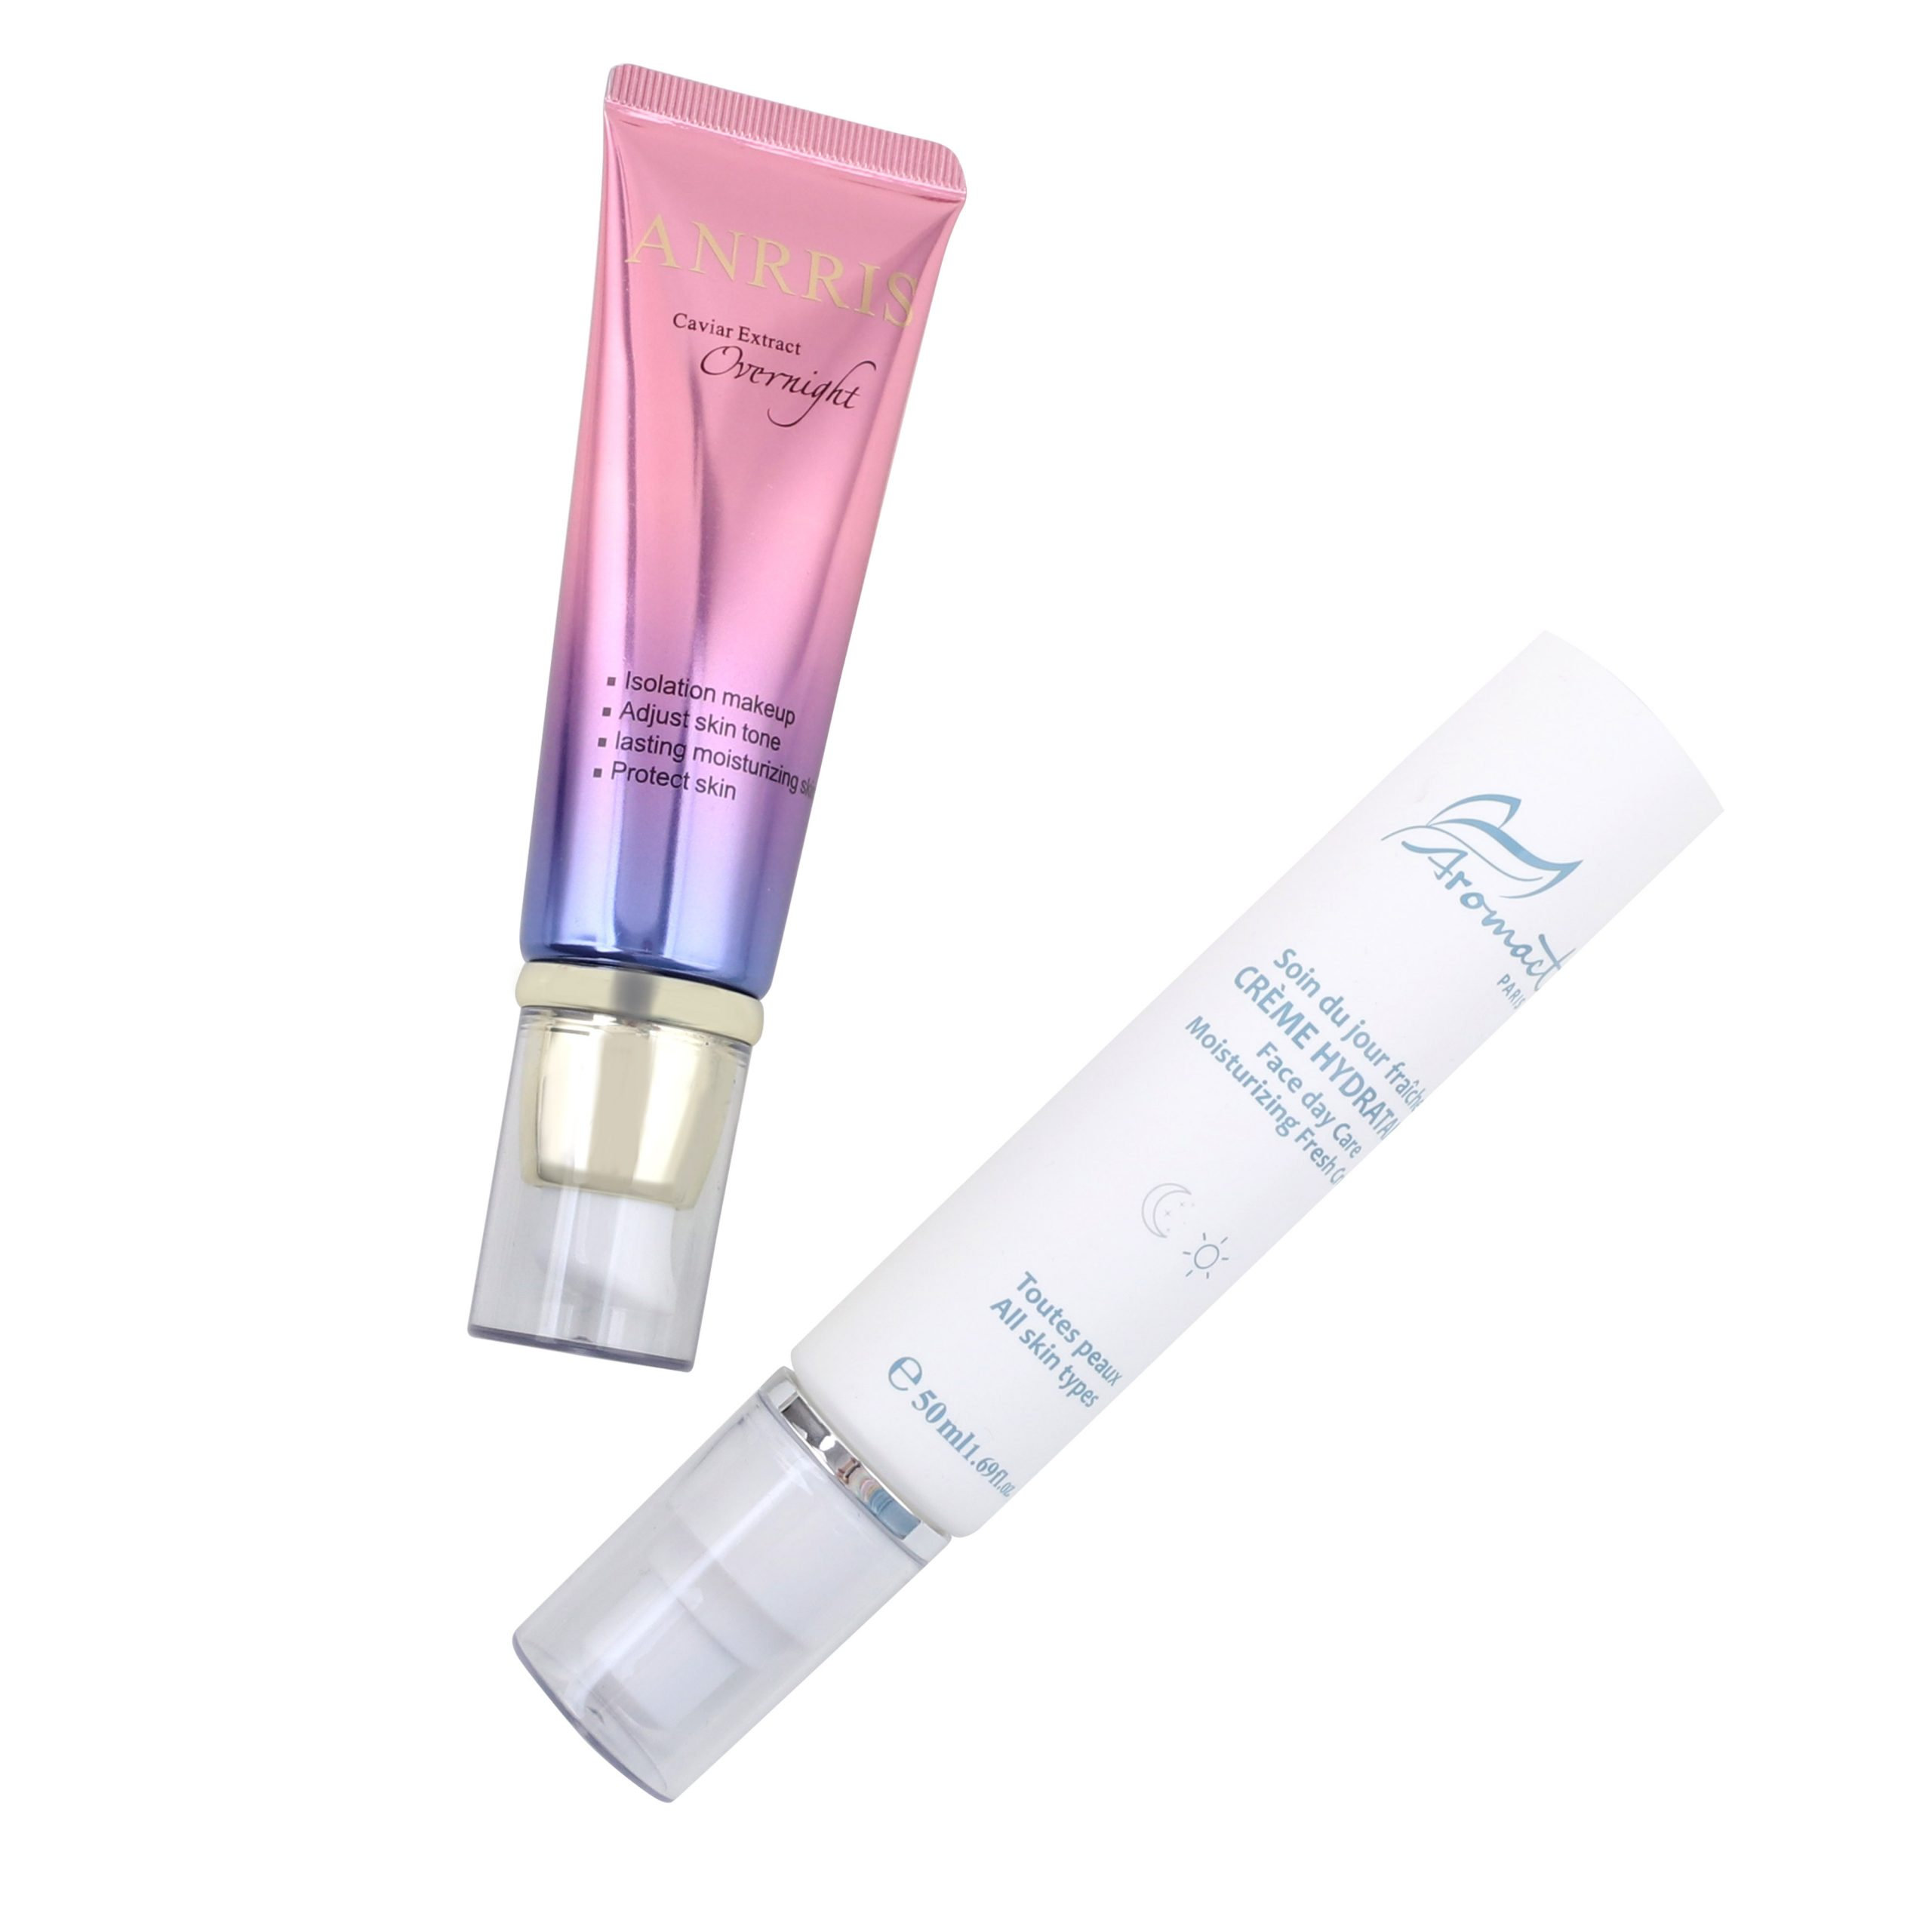 recyclable cosmetic packaging australia